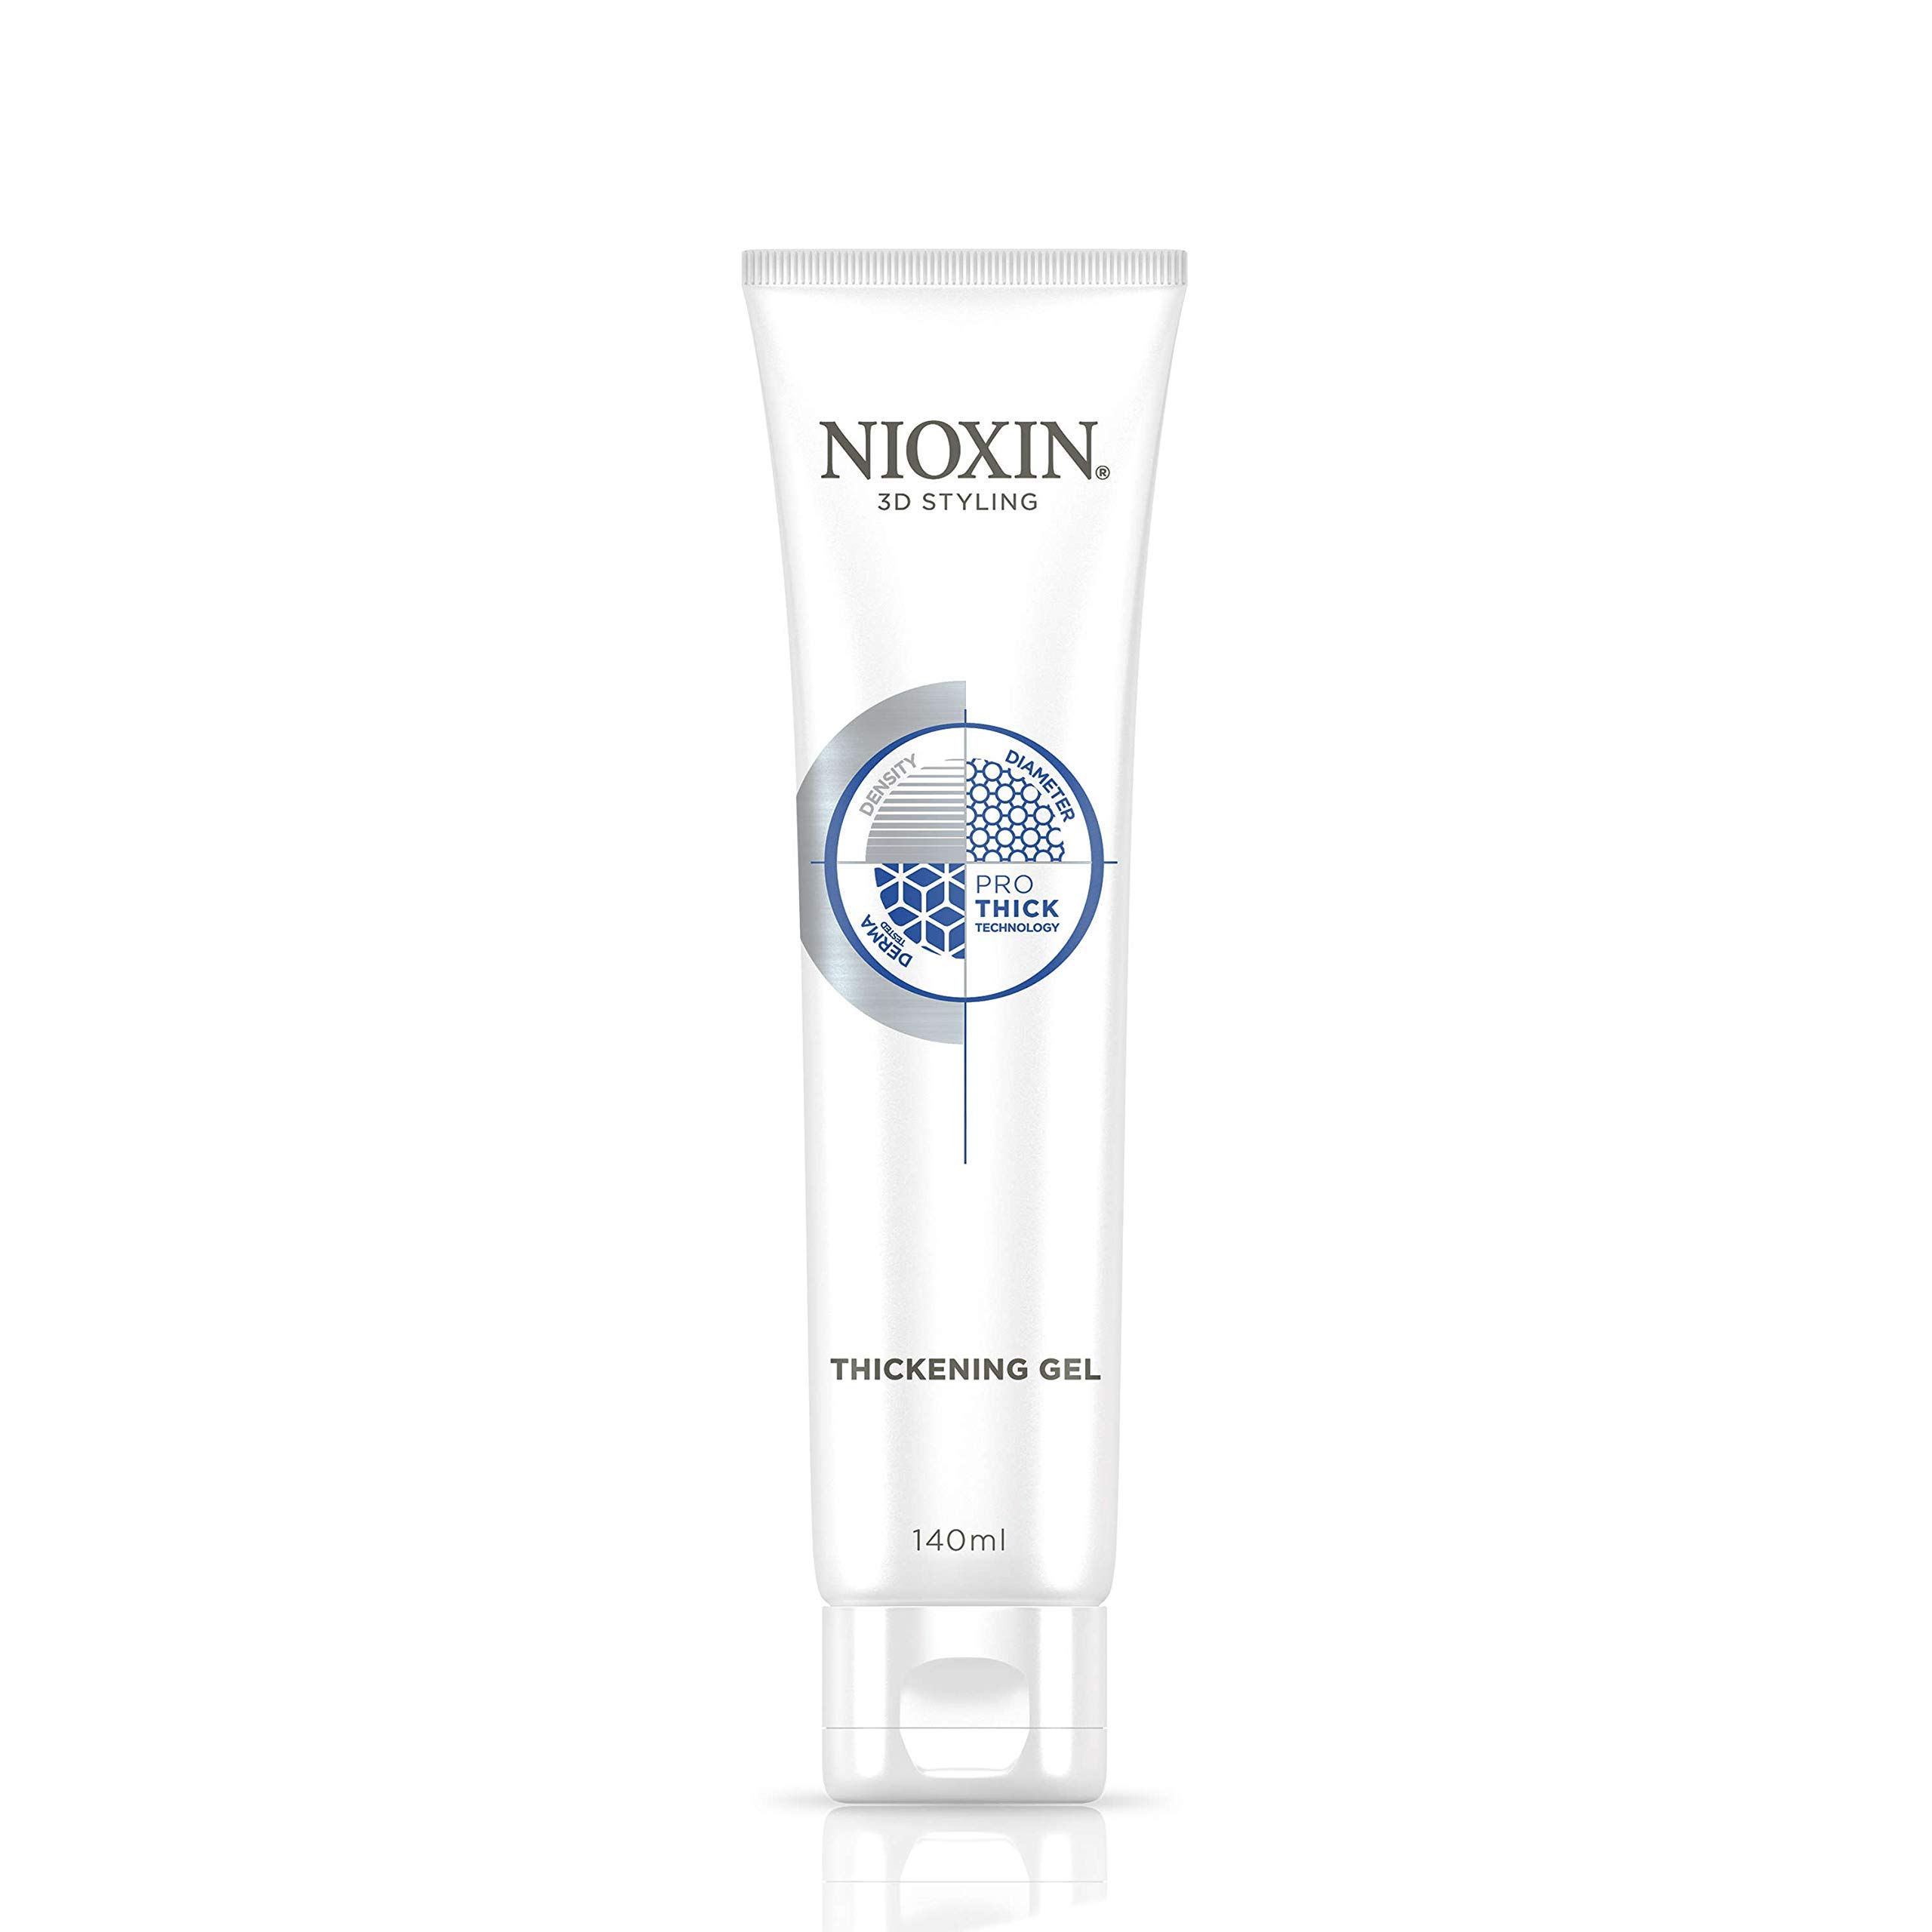 Nioxin 3D Styling Thickening Gel, 5.13 Ounce by Nioxin